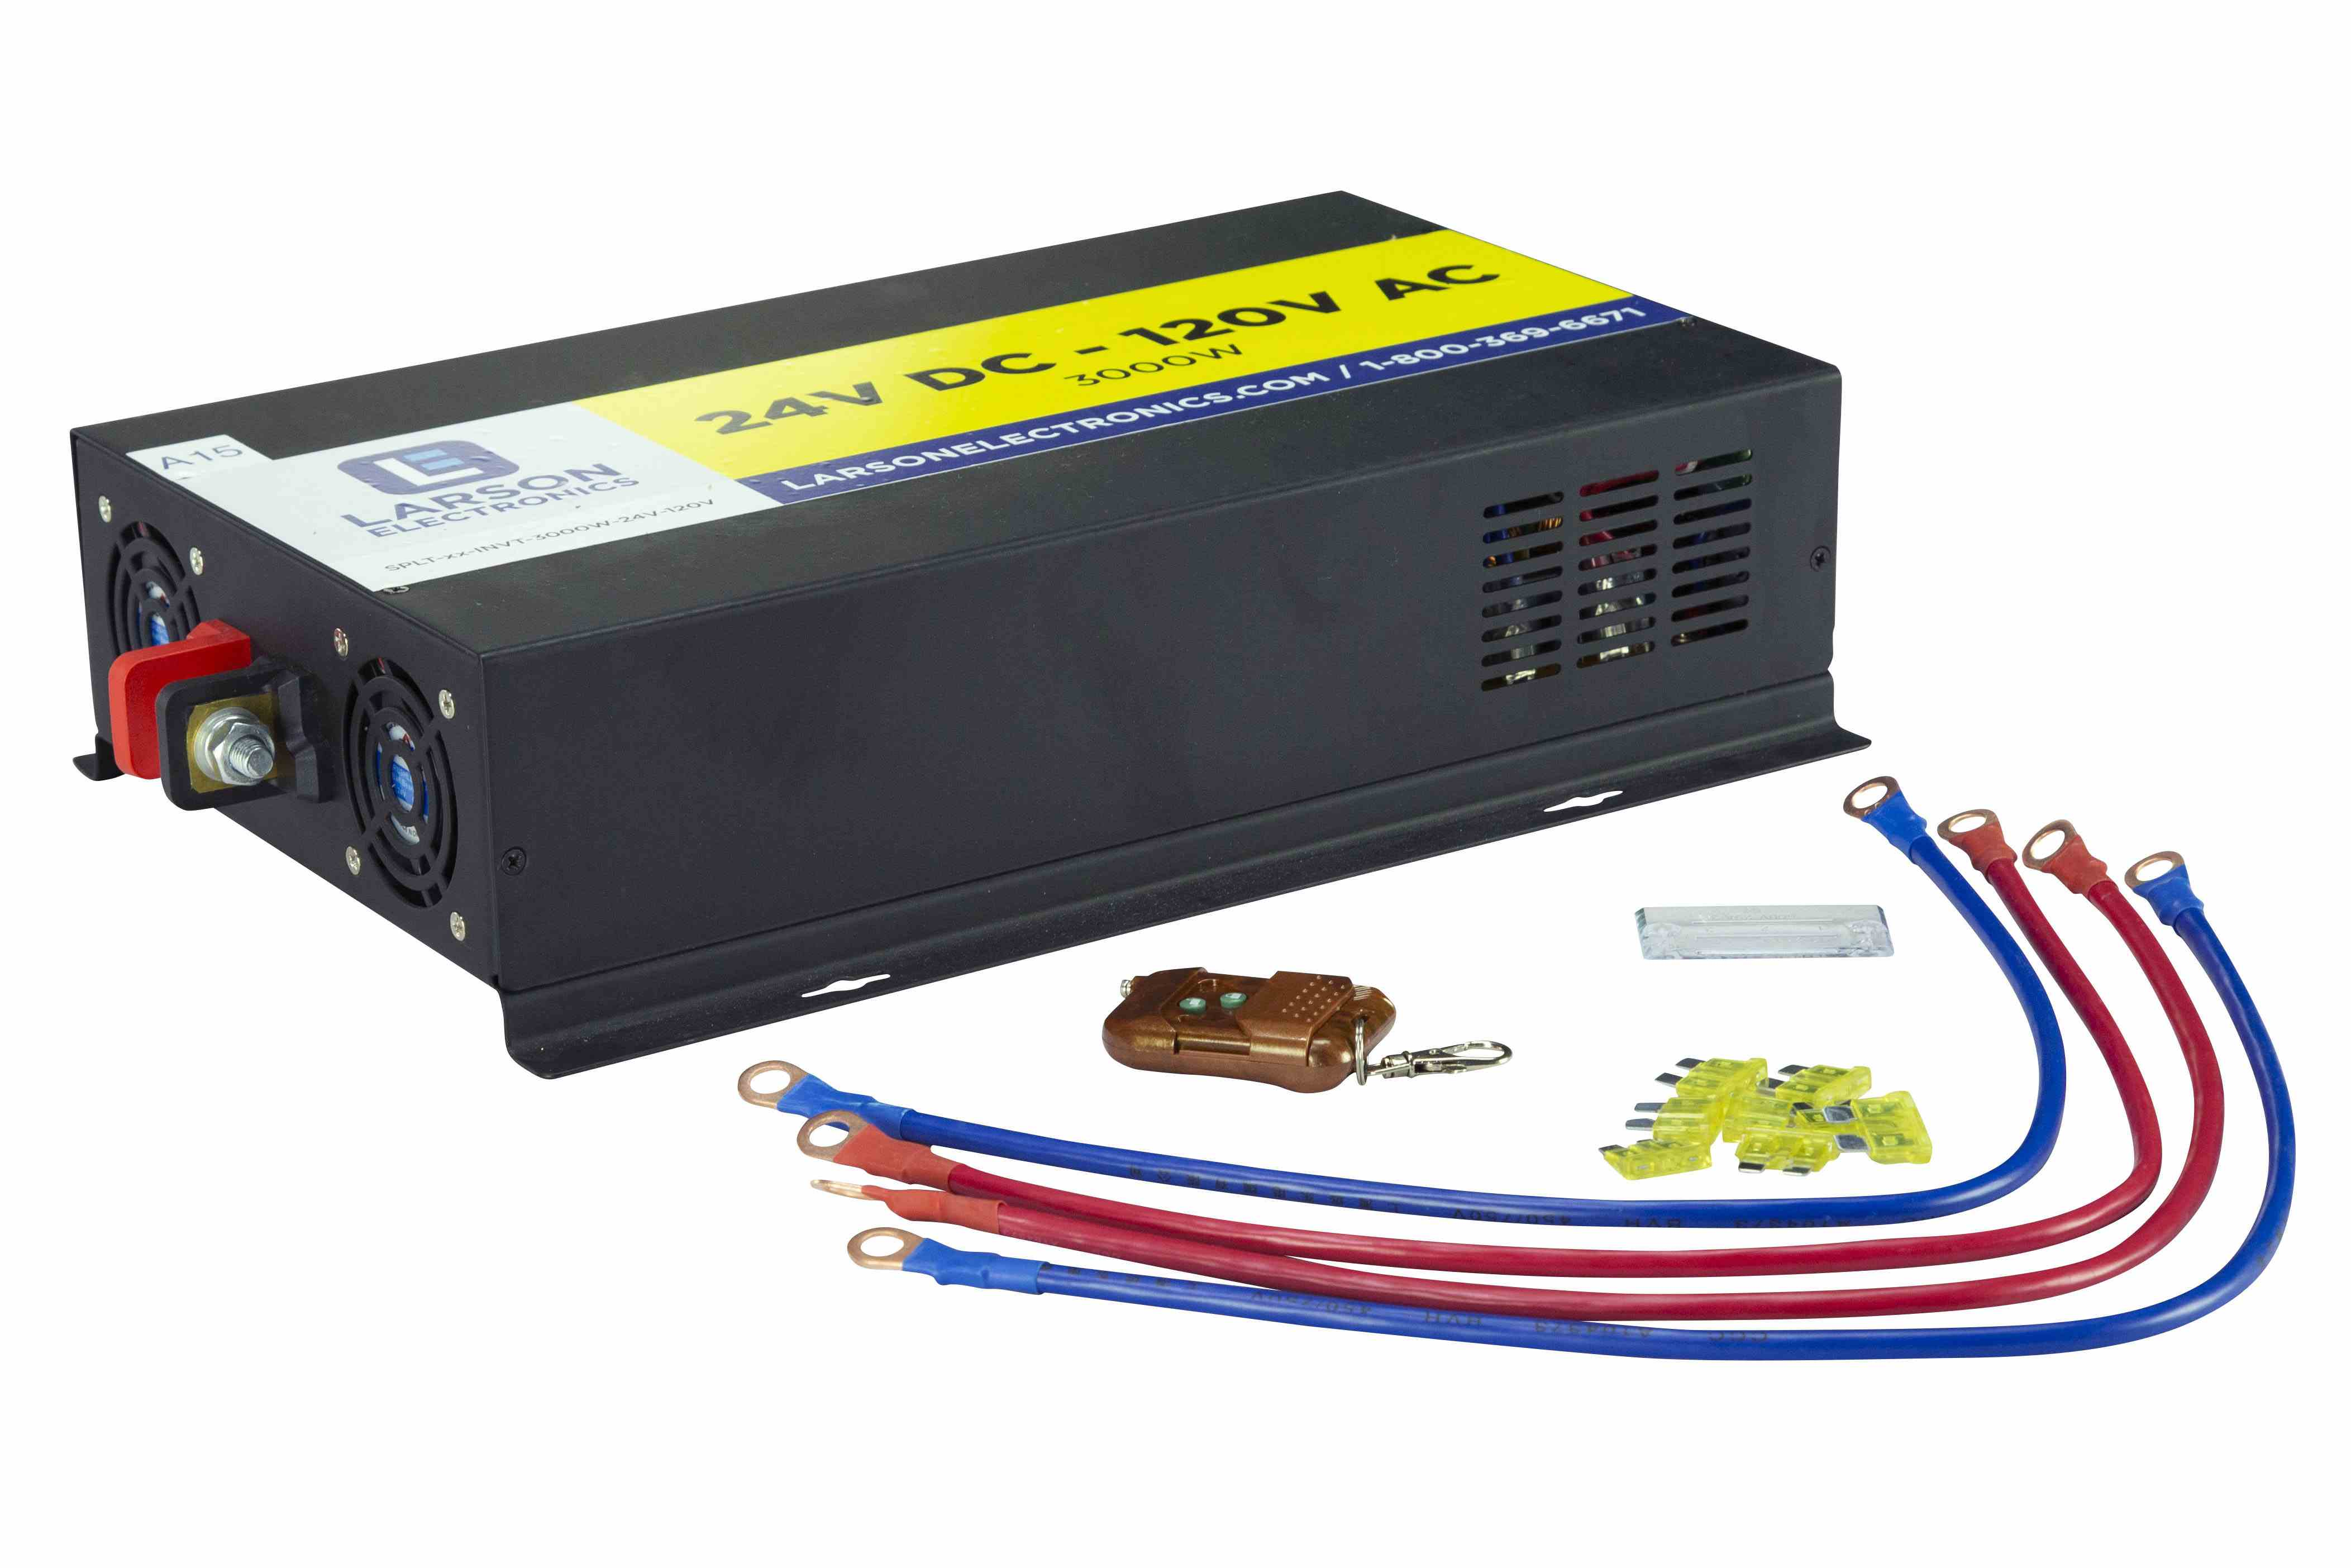 Replacement 3000 Watt 24V DC Input to 120V AC Output for Solar Generators